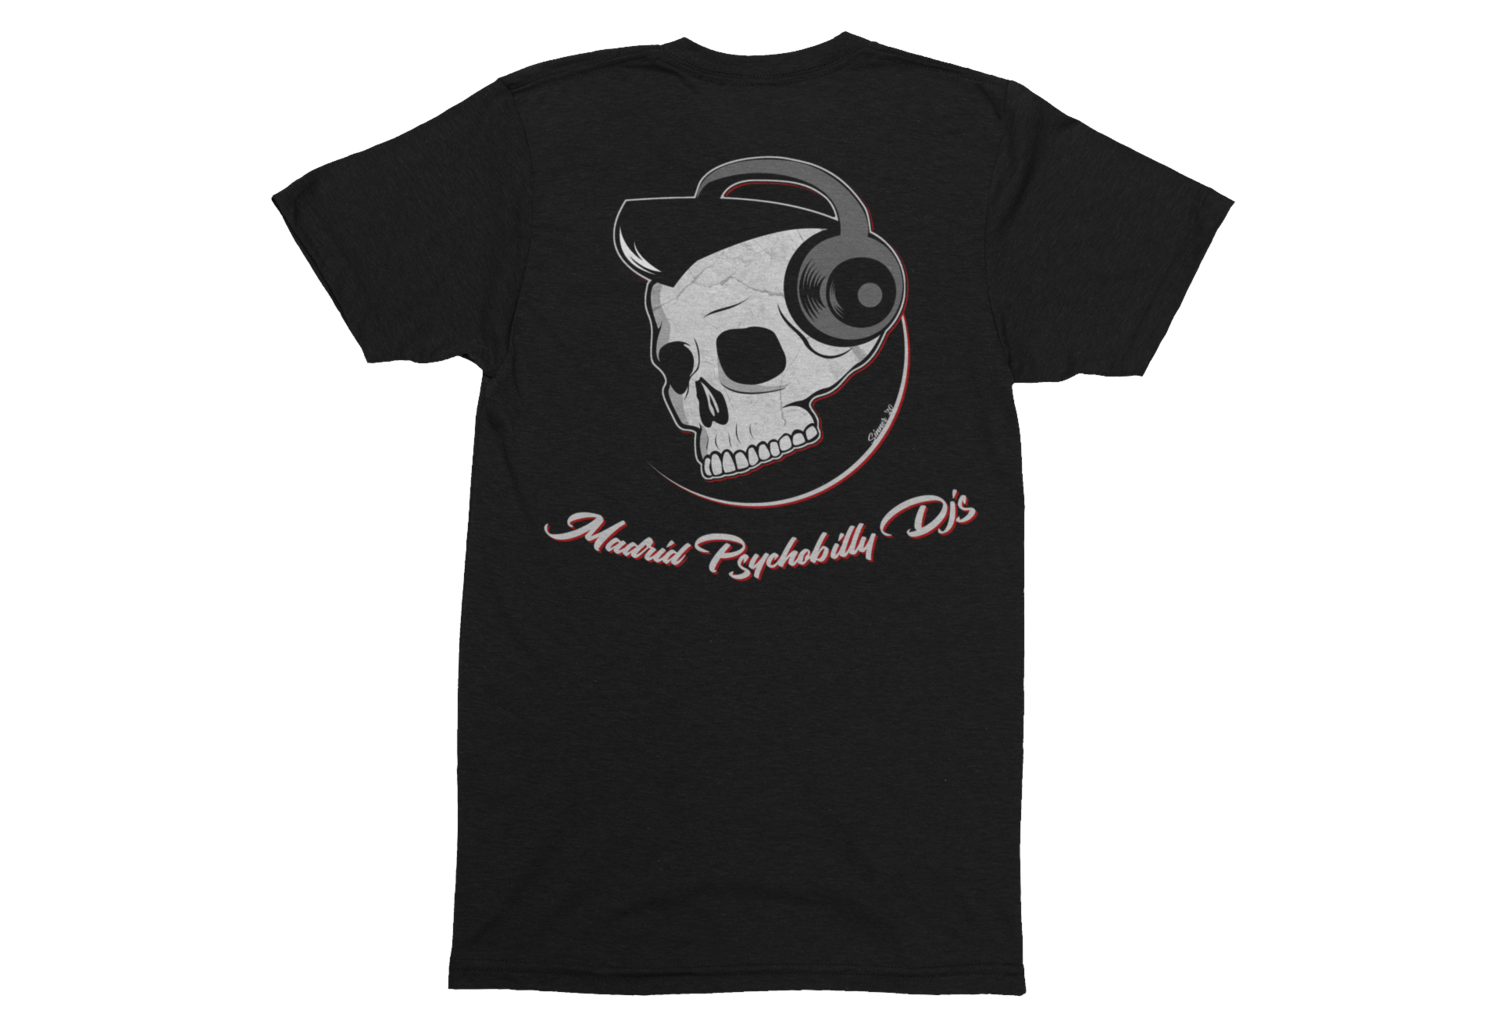 "PSYCHO REBEL & SINNER A GO-GO DJ ""Madrid Psychobilly DJS"" T-SHIRT MAN"